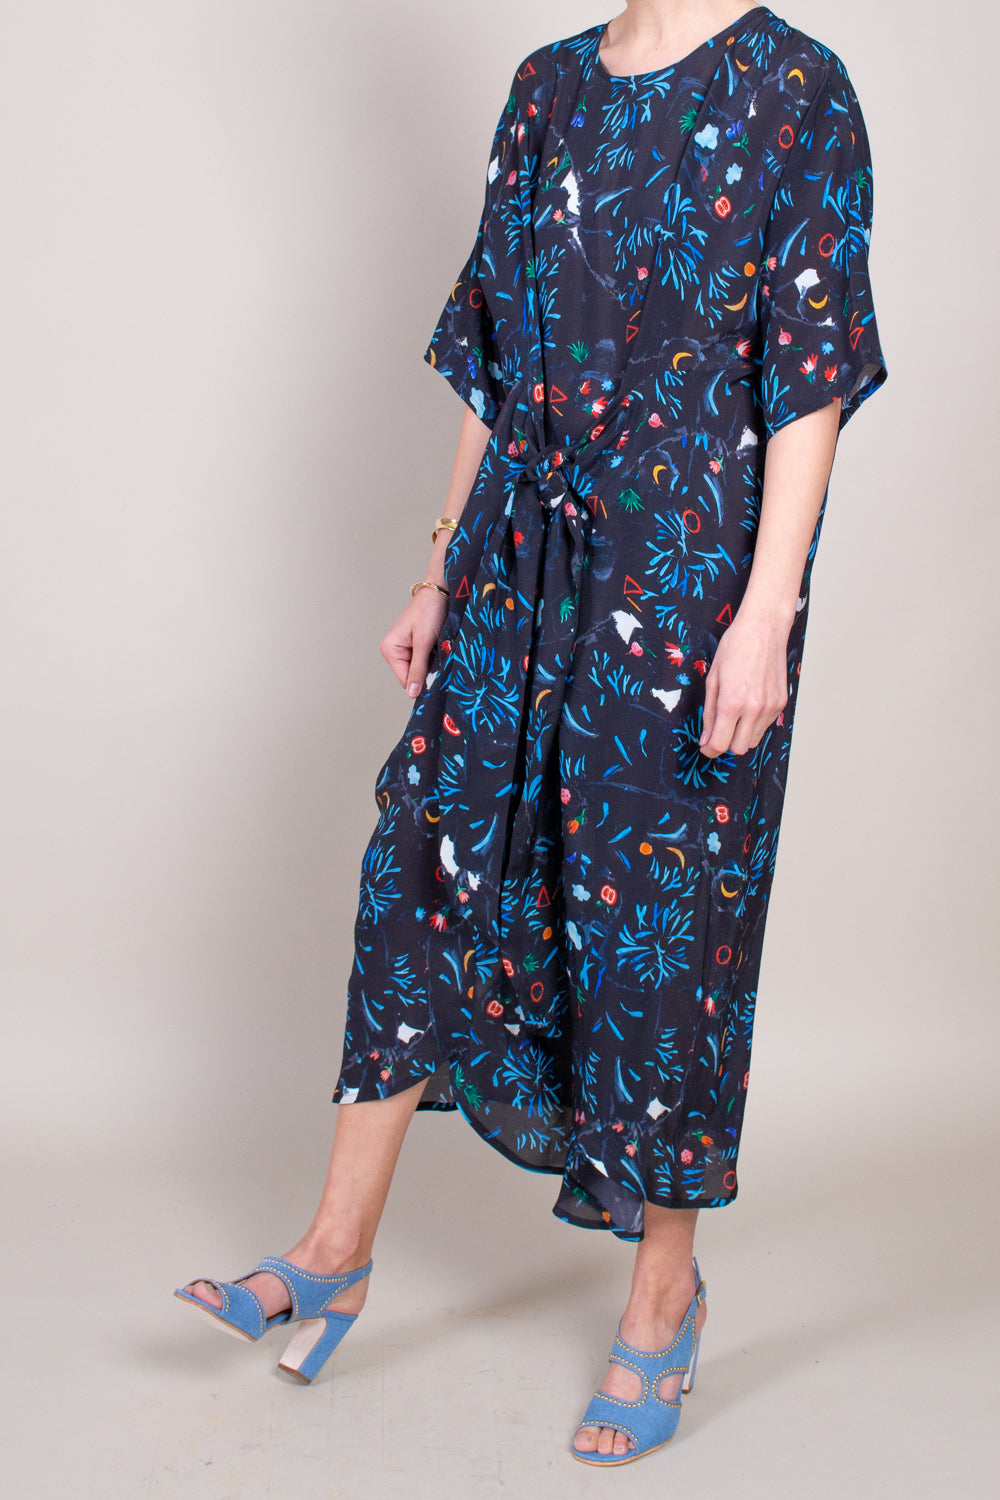 Turn-around Dress in A Print